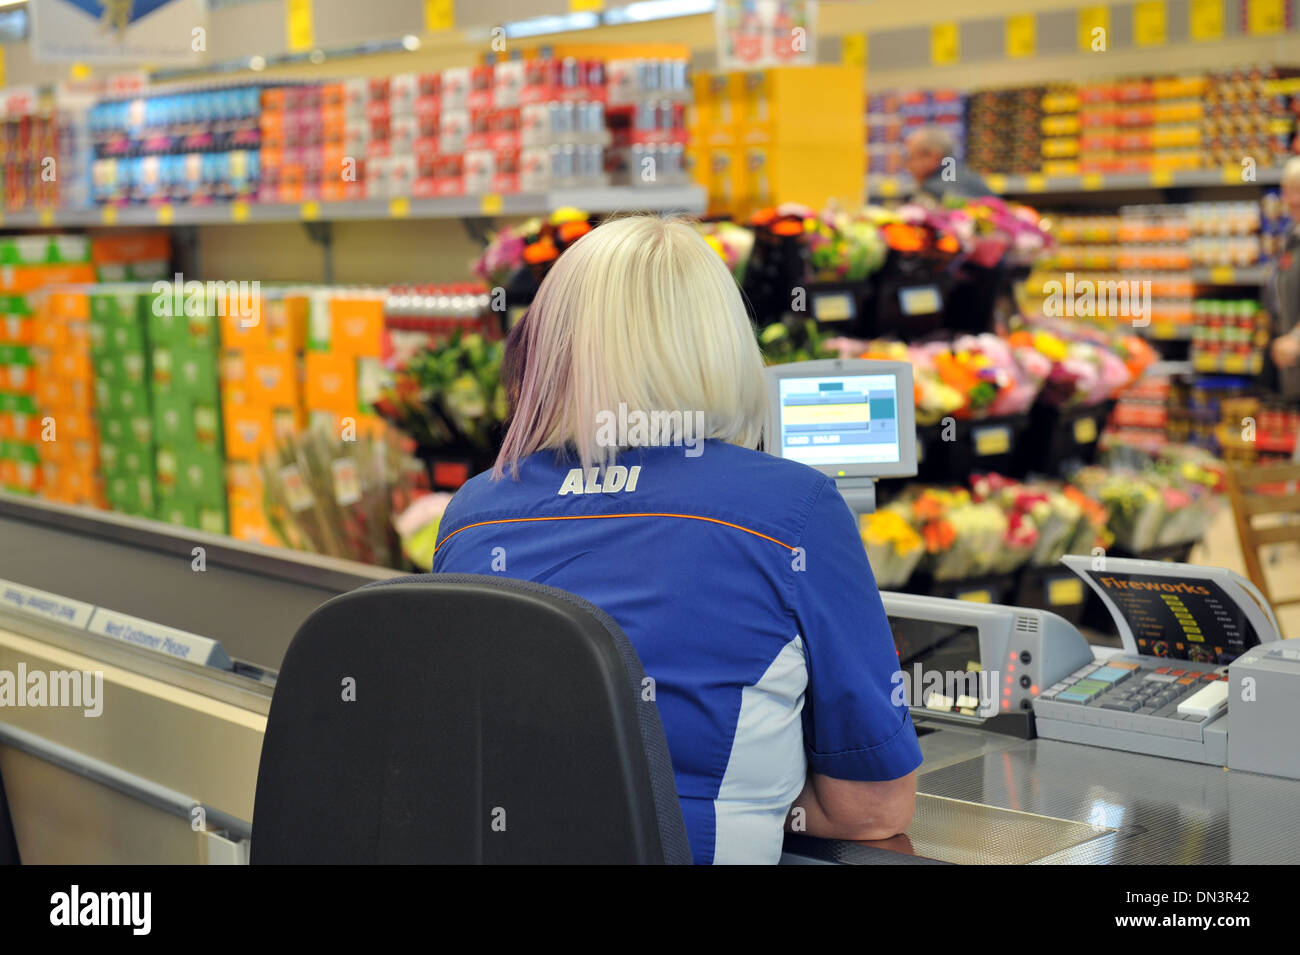 Checkout staff at Aldi Supermarket, Leeds UK - Stock Image